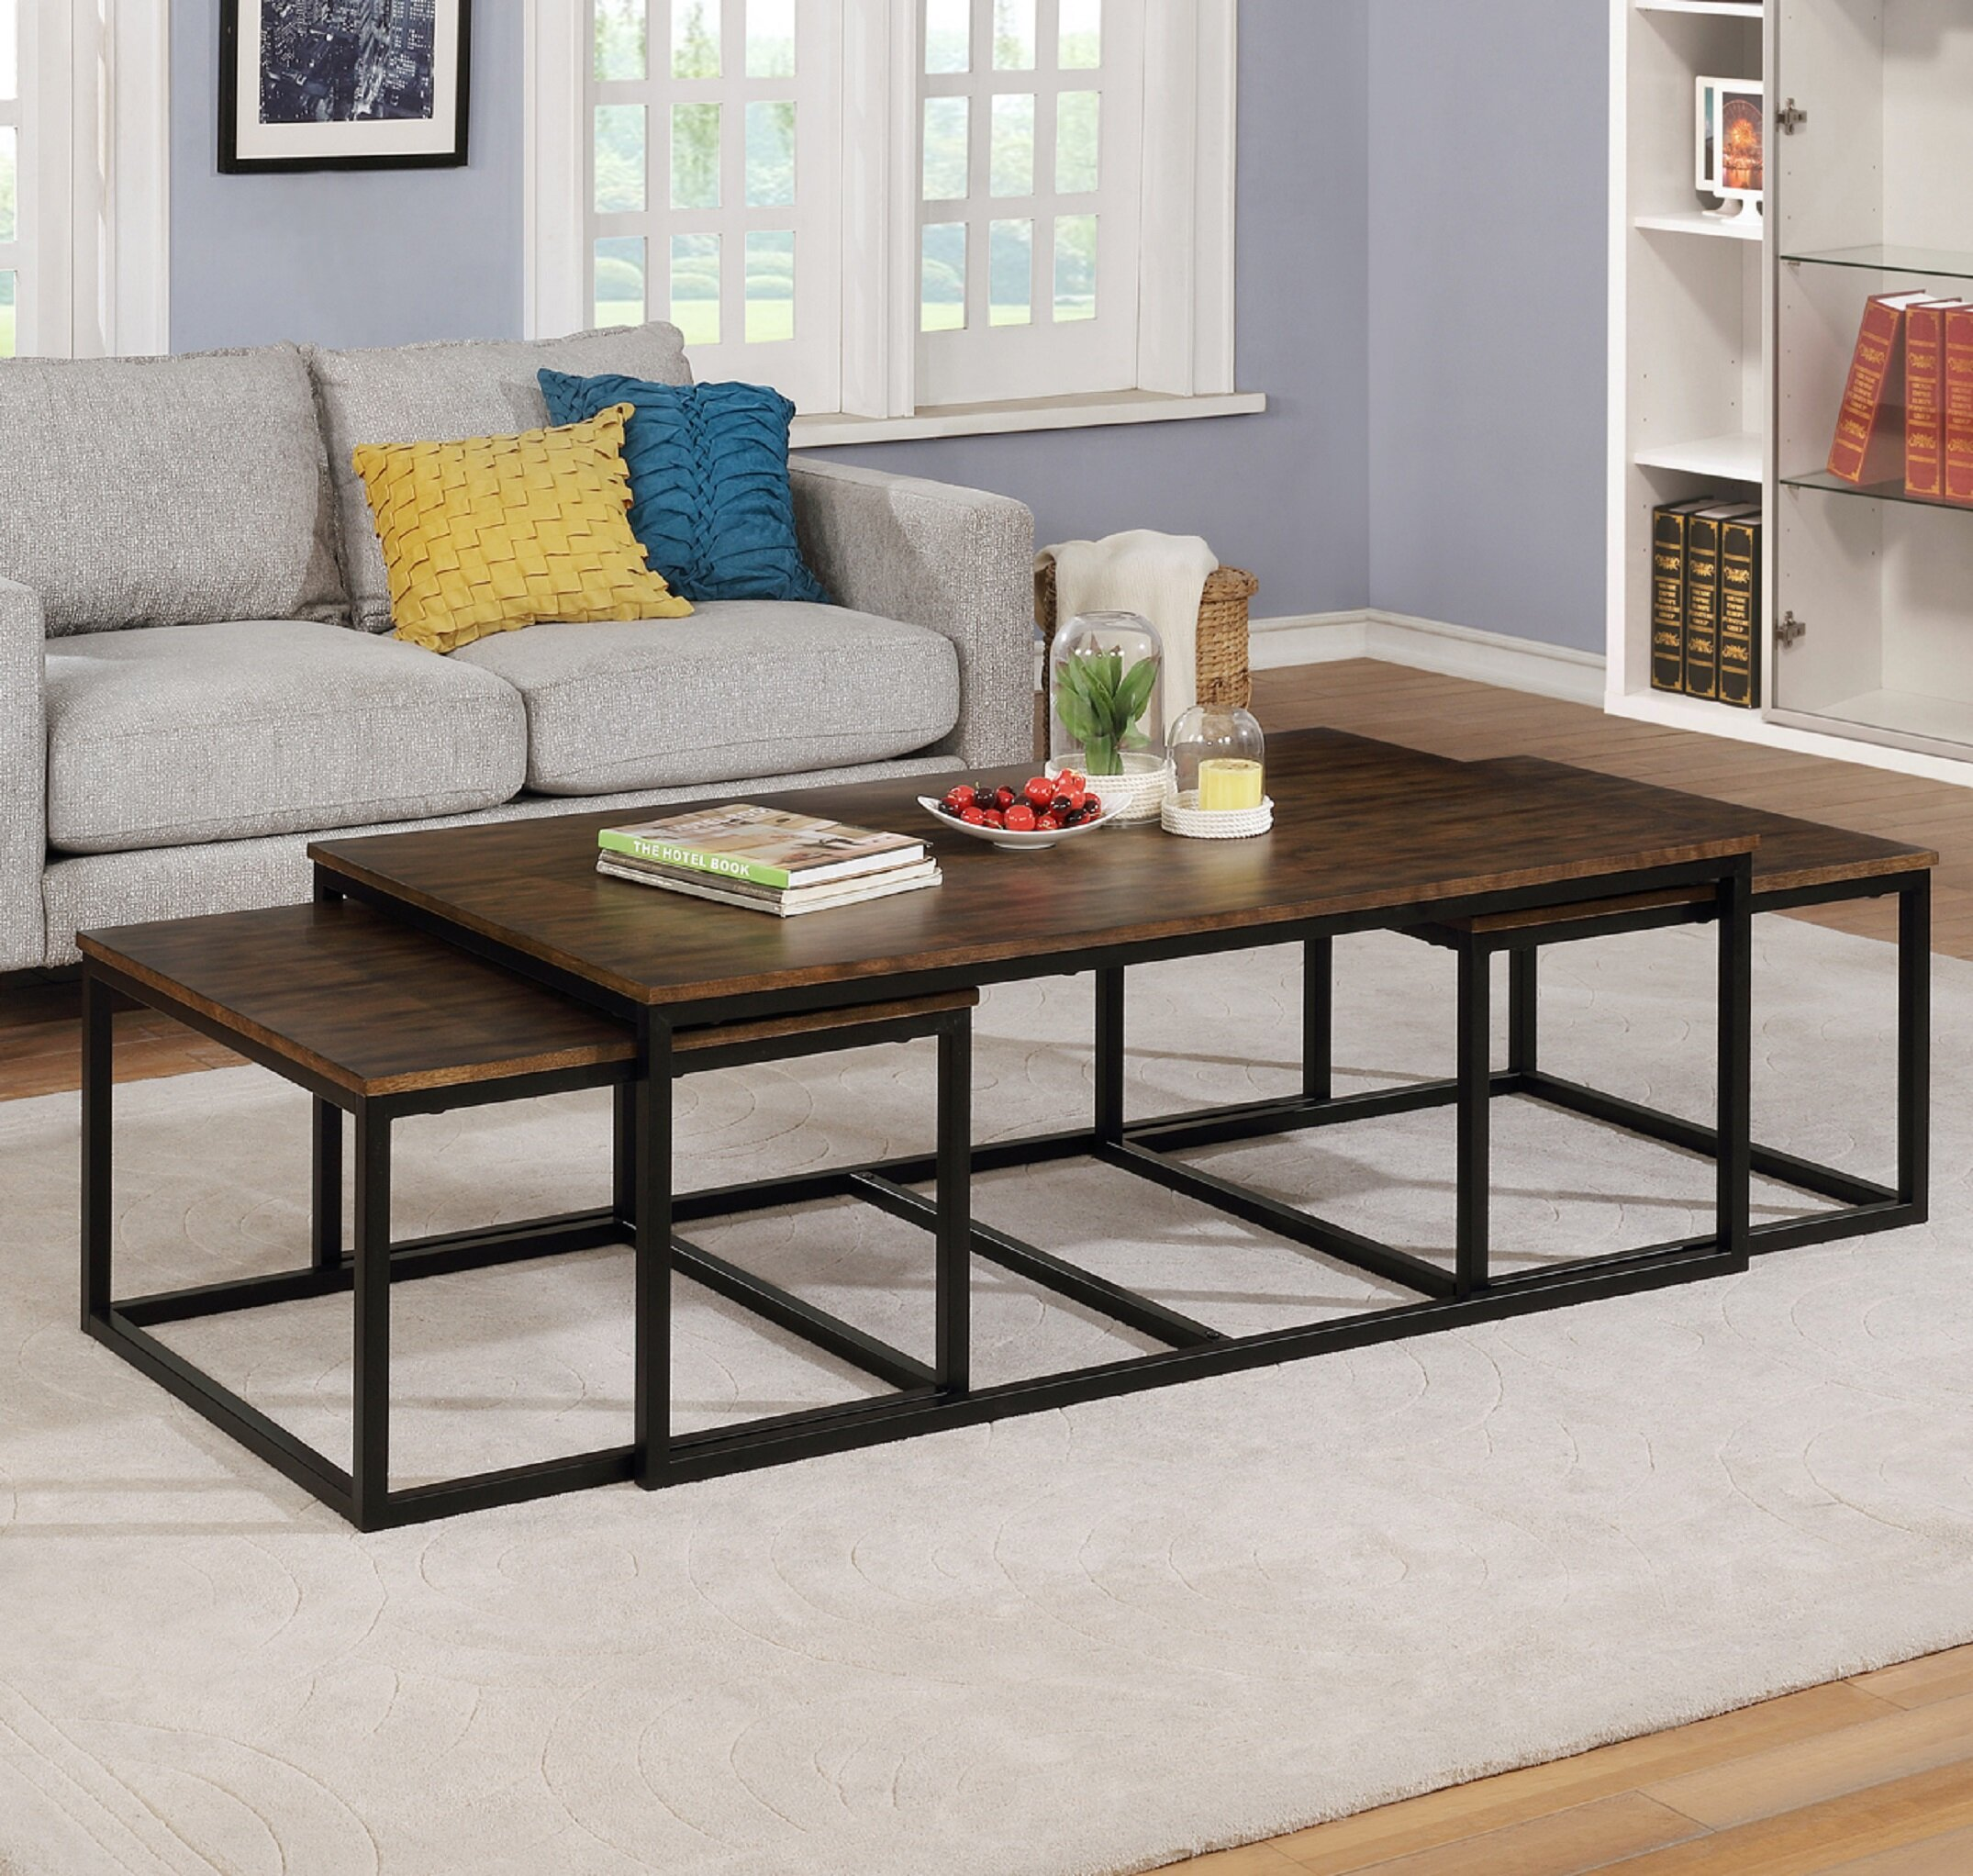 - Gracie Oaks Hensley 3 Piece Coffee Table And Nesting Tables Set